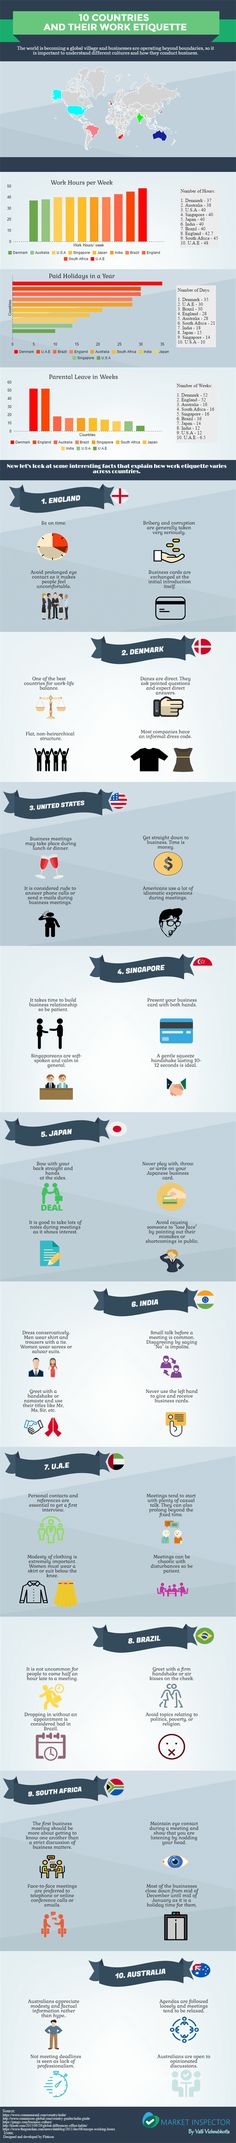 10 Countries And Their Work Etiquette #Infographic #Business #Travel